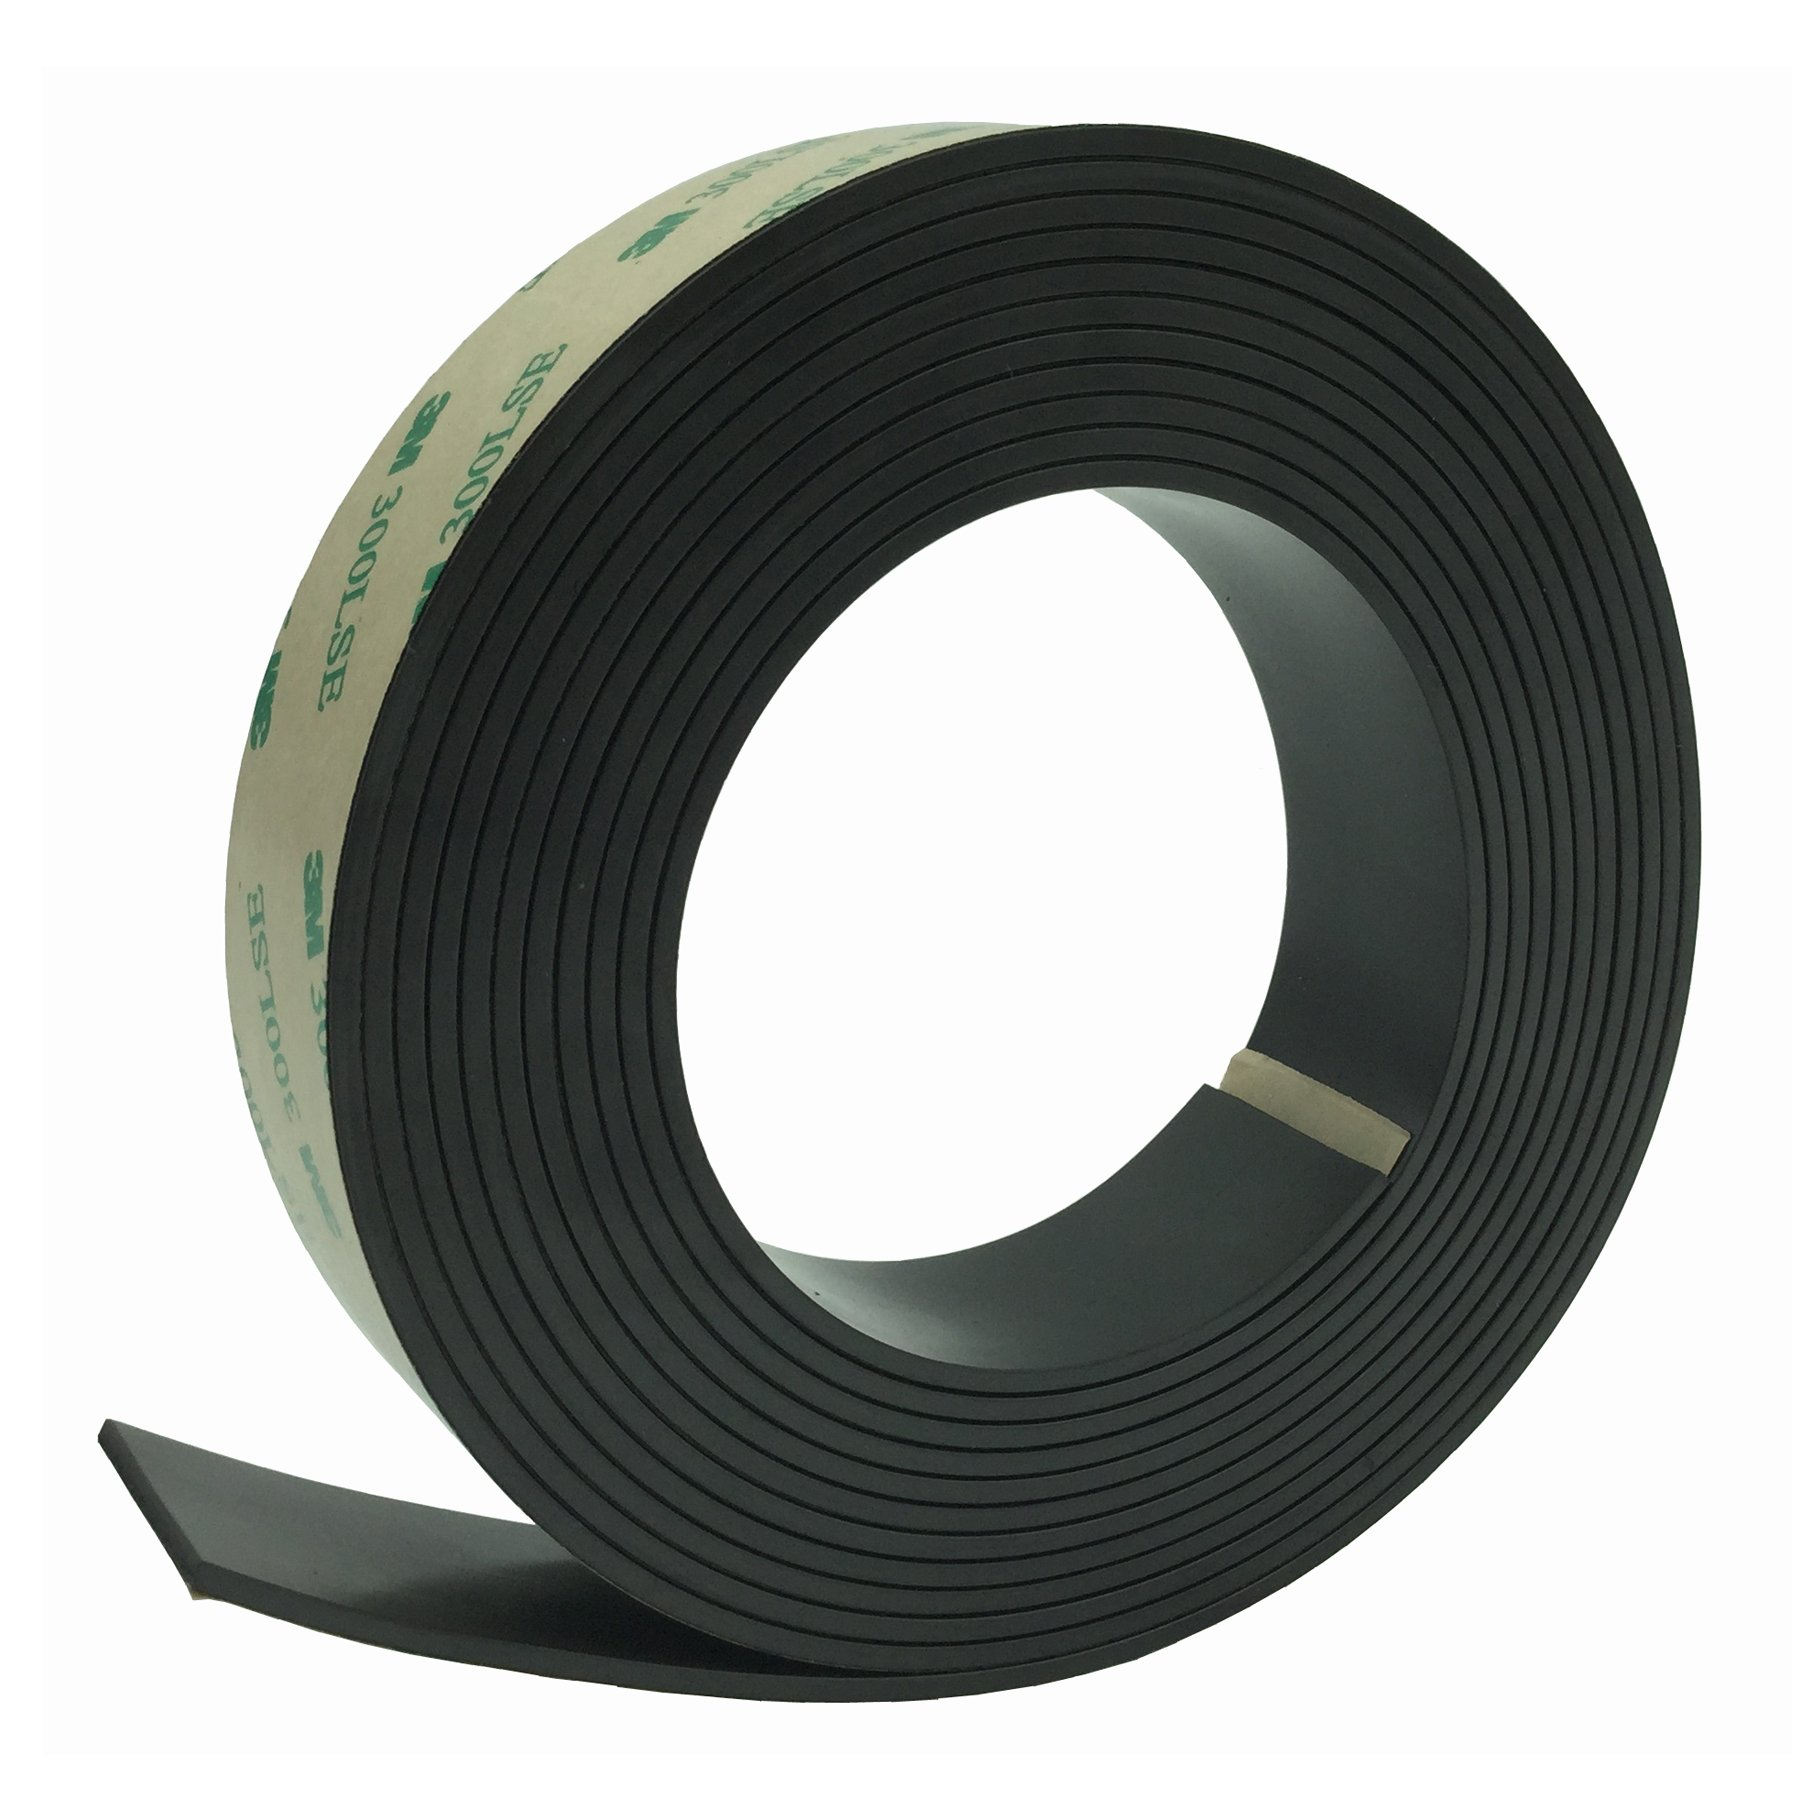 Anisotropic Strong Magnet Magnetic Strip Tape,Bingolar Strong Anisotropic Rubber Magnet tape Roll with Prime Sticky Adhesive,Ideal 1 Inch x 11 Feet Magnetic Roll for Craft and DIY Projects Sticky Magn